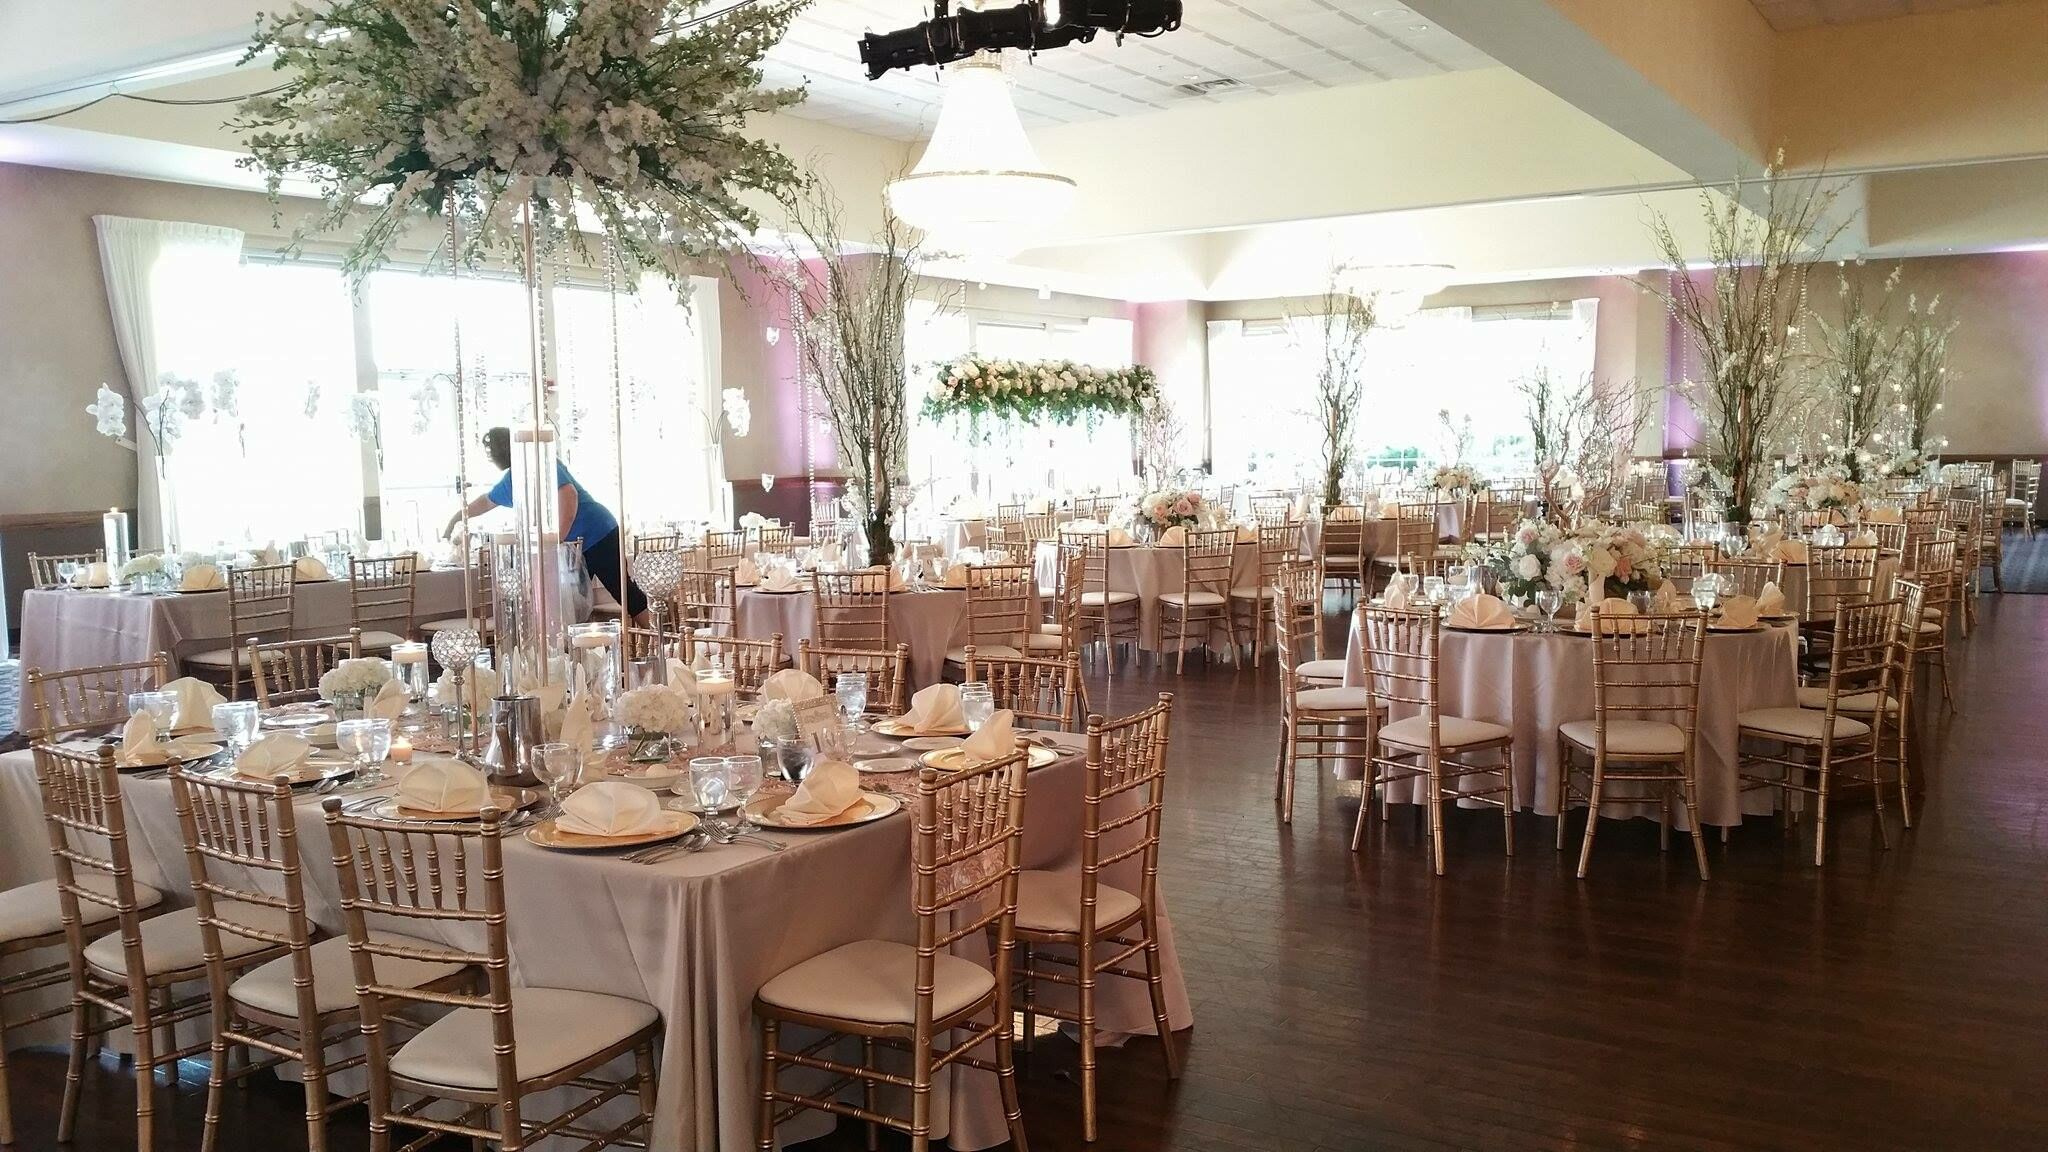 Avalon Manor Banquet Center And Catering Merrillville In